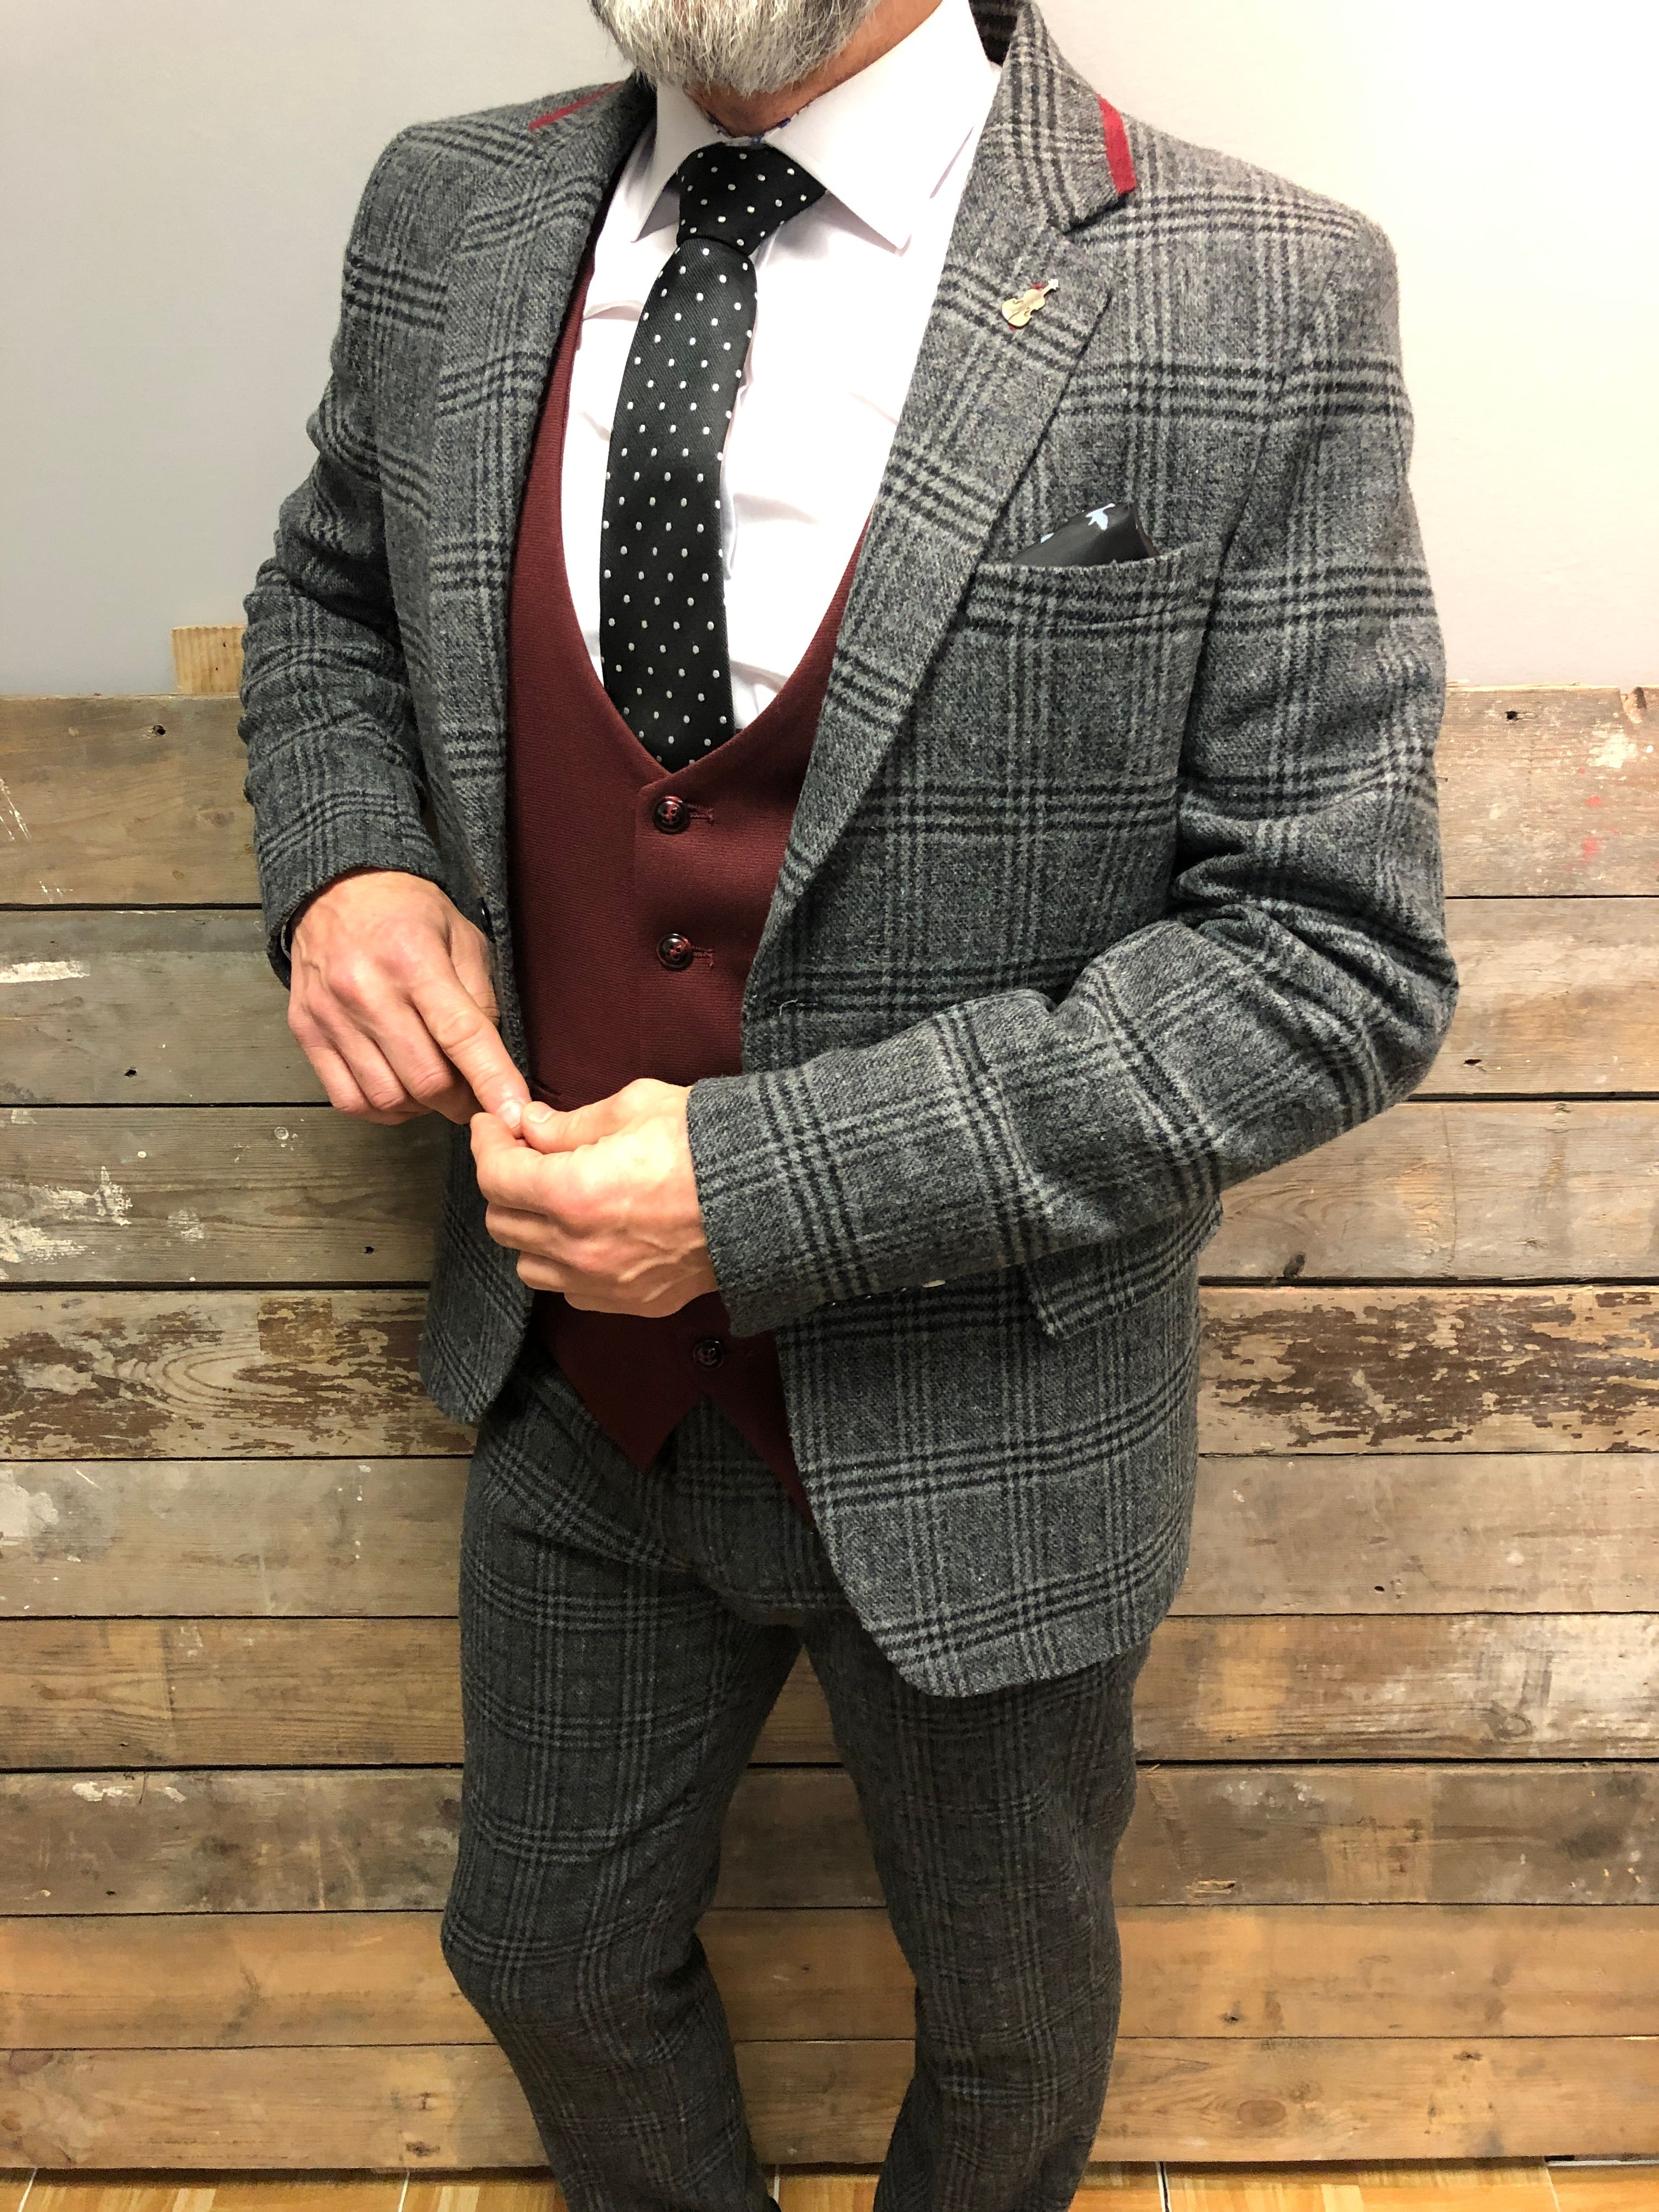 Fratelli Grey Check Tweed Style Suit With Burgundy Trim.